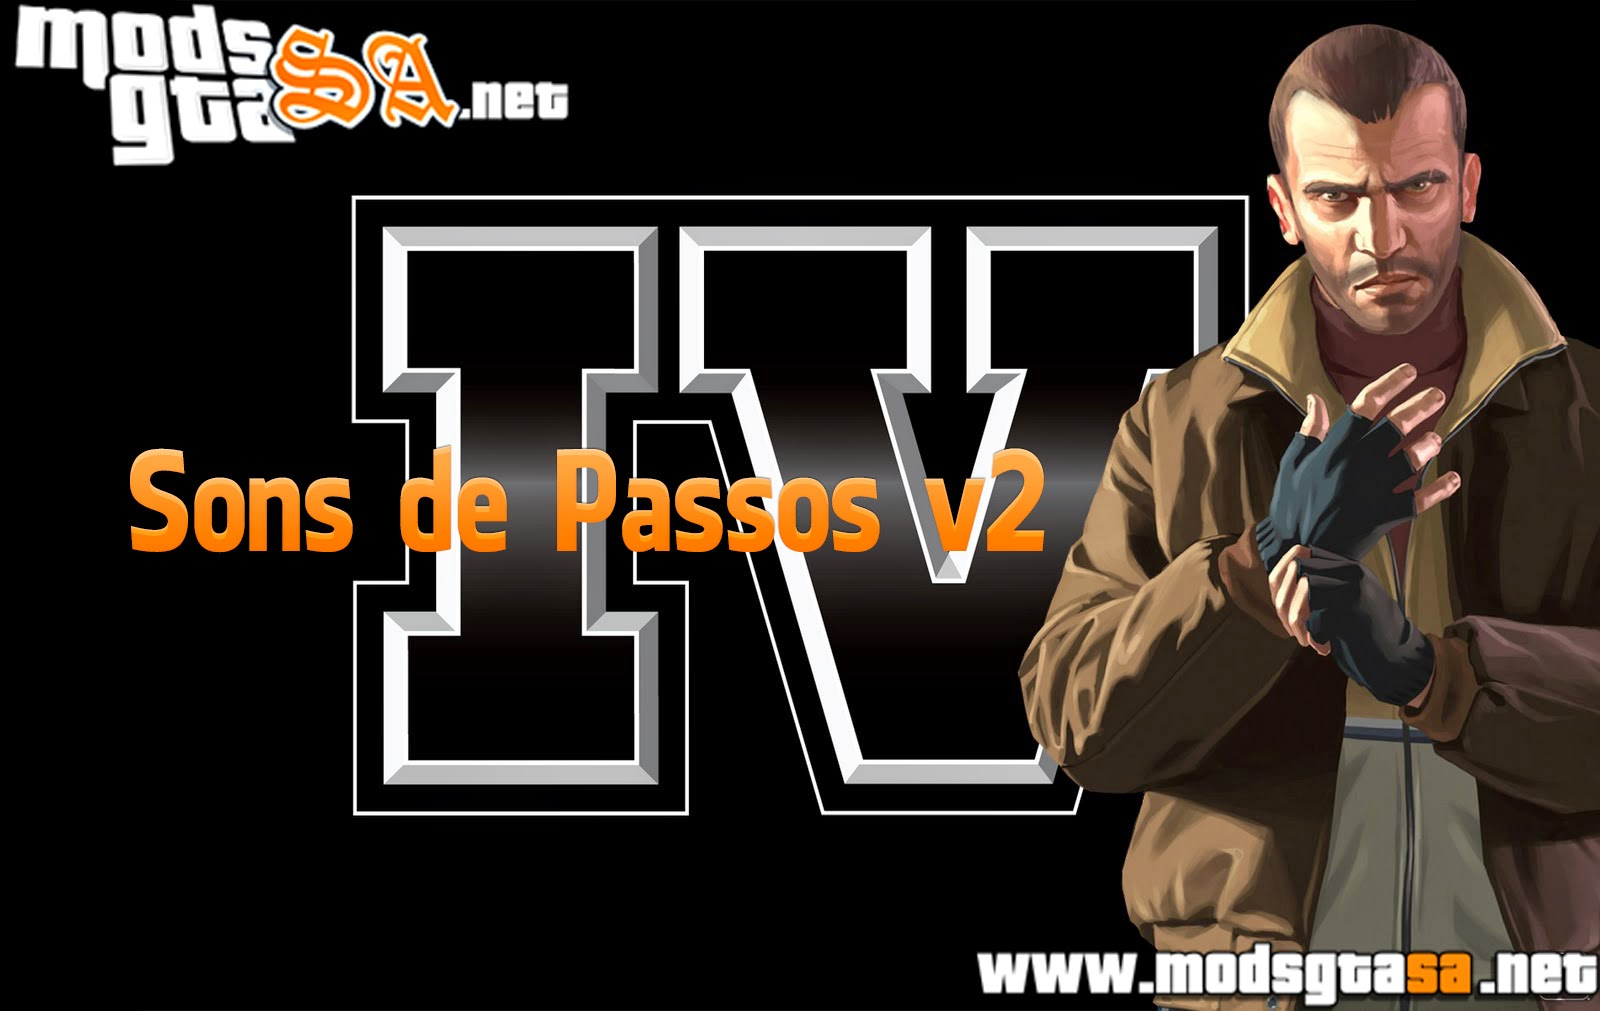 SA - Sons de Passos do GTA IV V2